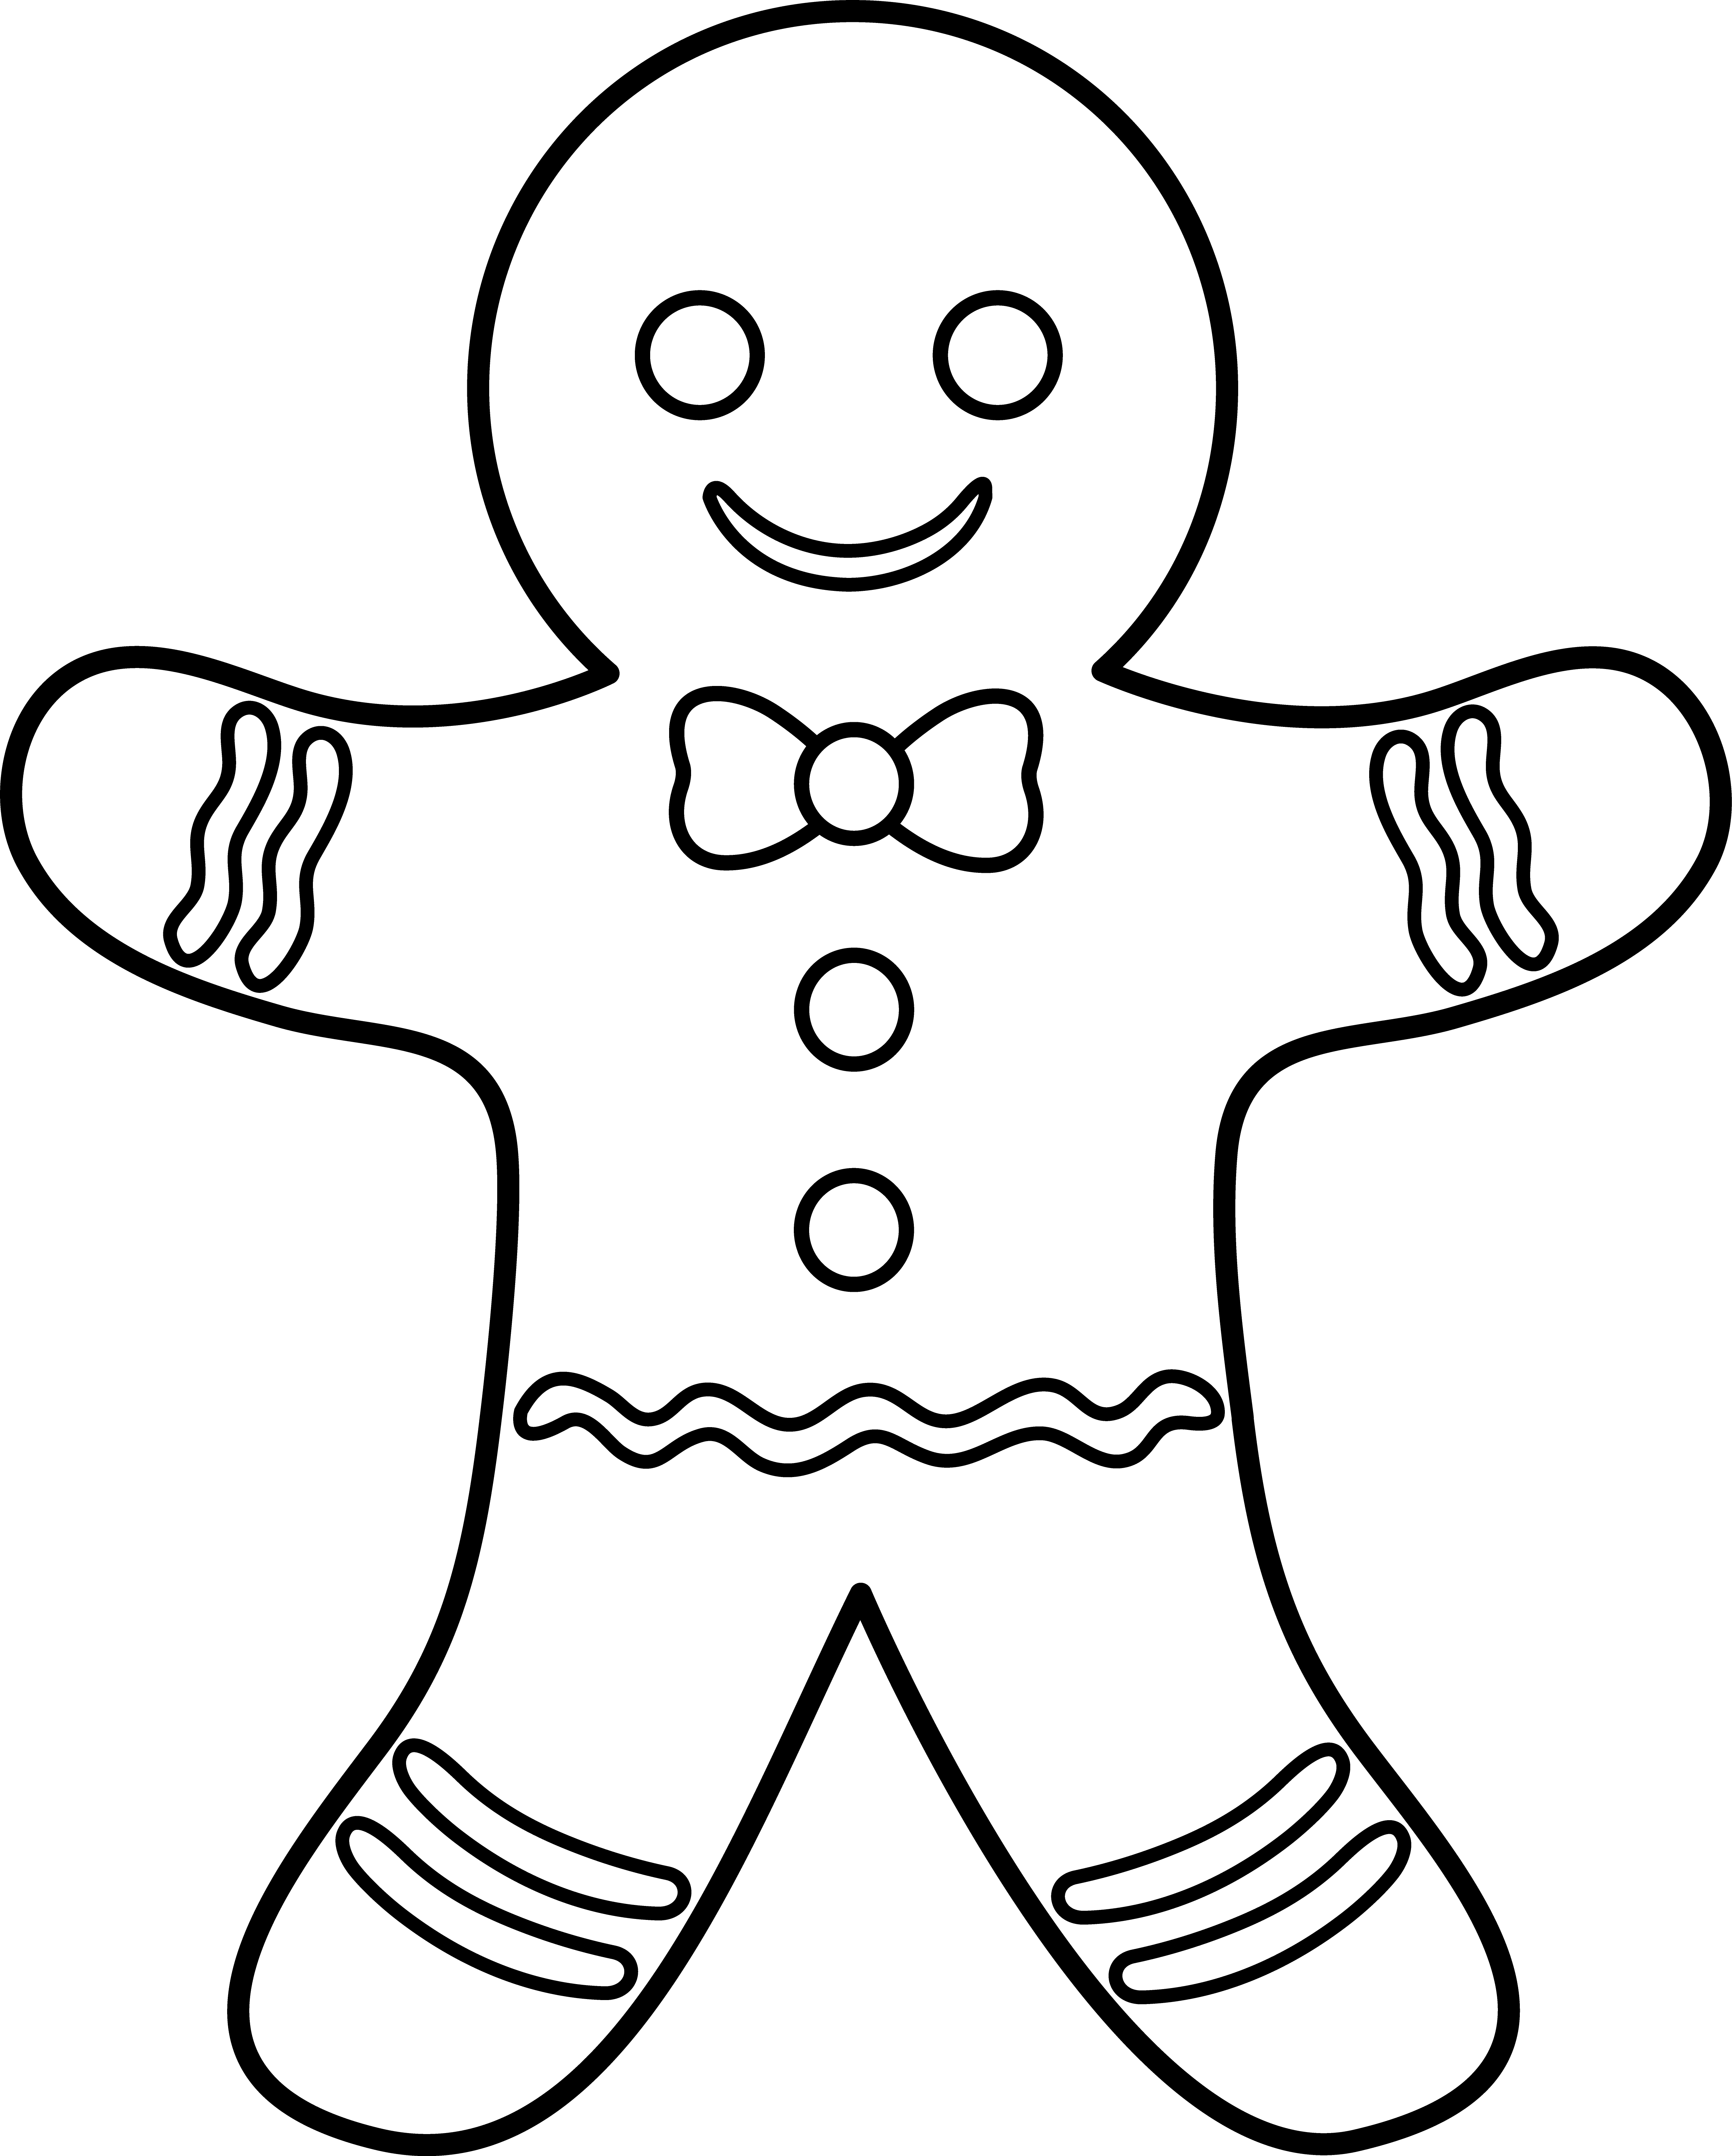 Christmas Lights Coloring Page This Would Be Fun To Color Description From Pinteres Gingerbread Man Coloring Page Coloring Pages Inspirational Coloring Pages